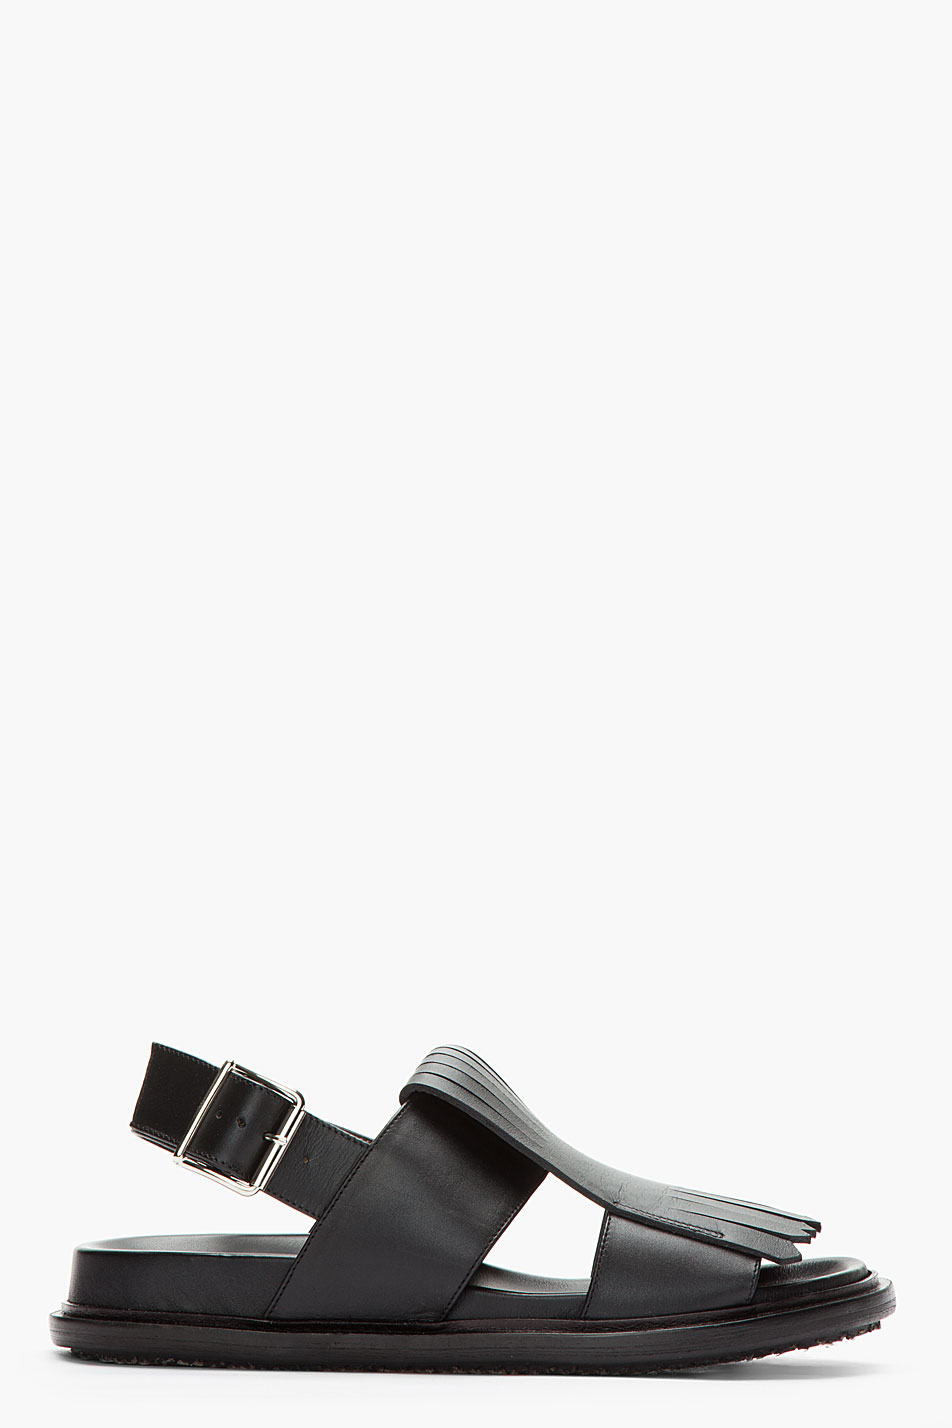 Marni Fringed Leather Sandals In Black For Men Lyst